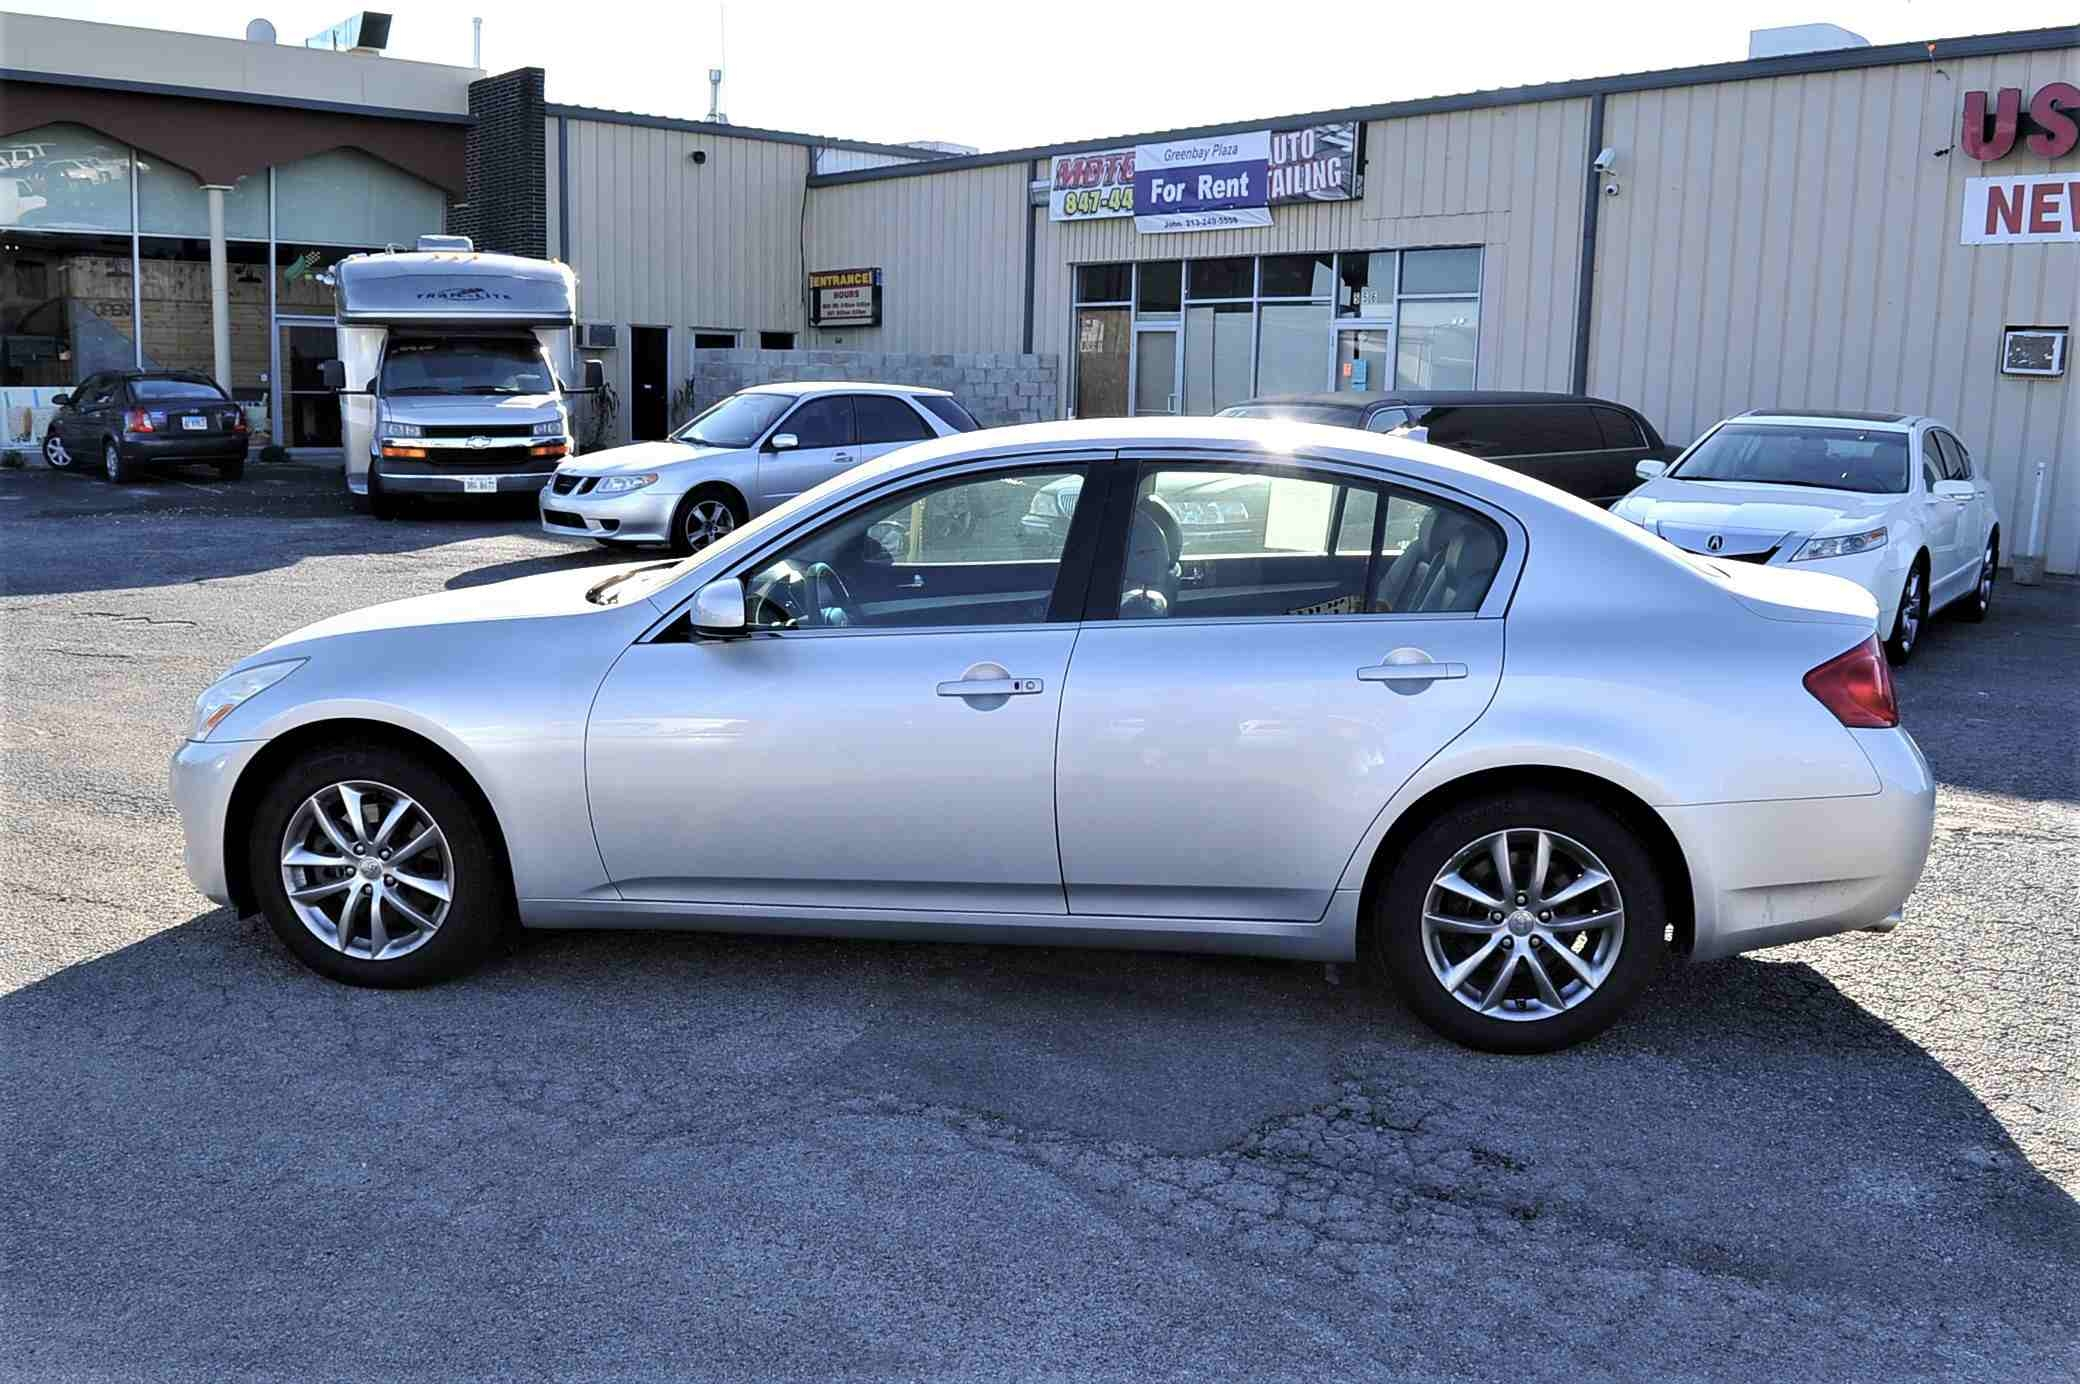 2008 Infiniti G35X Silver Navigation Sedan Used Car Sale Gurnee Kenosha Mchenry Chicago Illinois